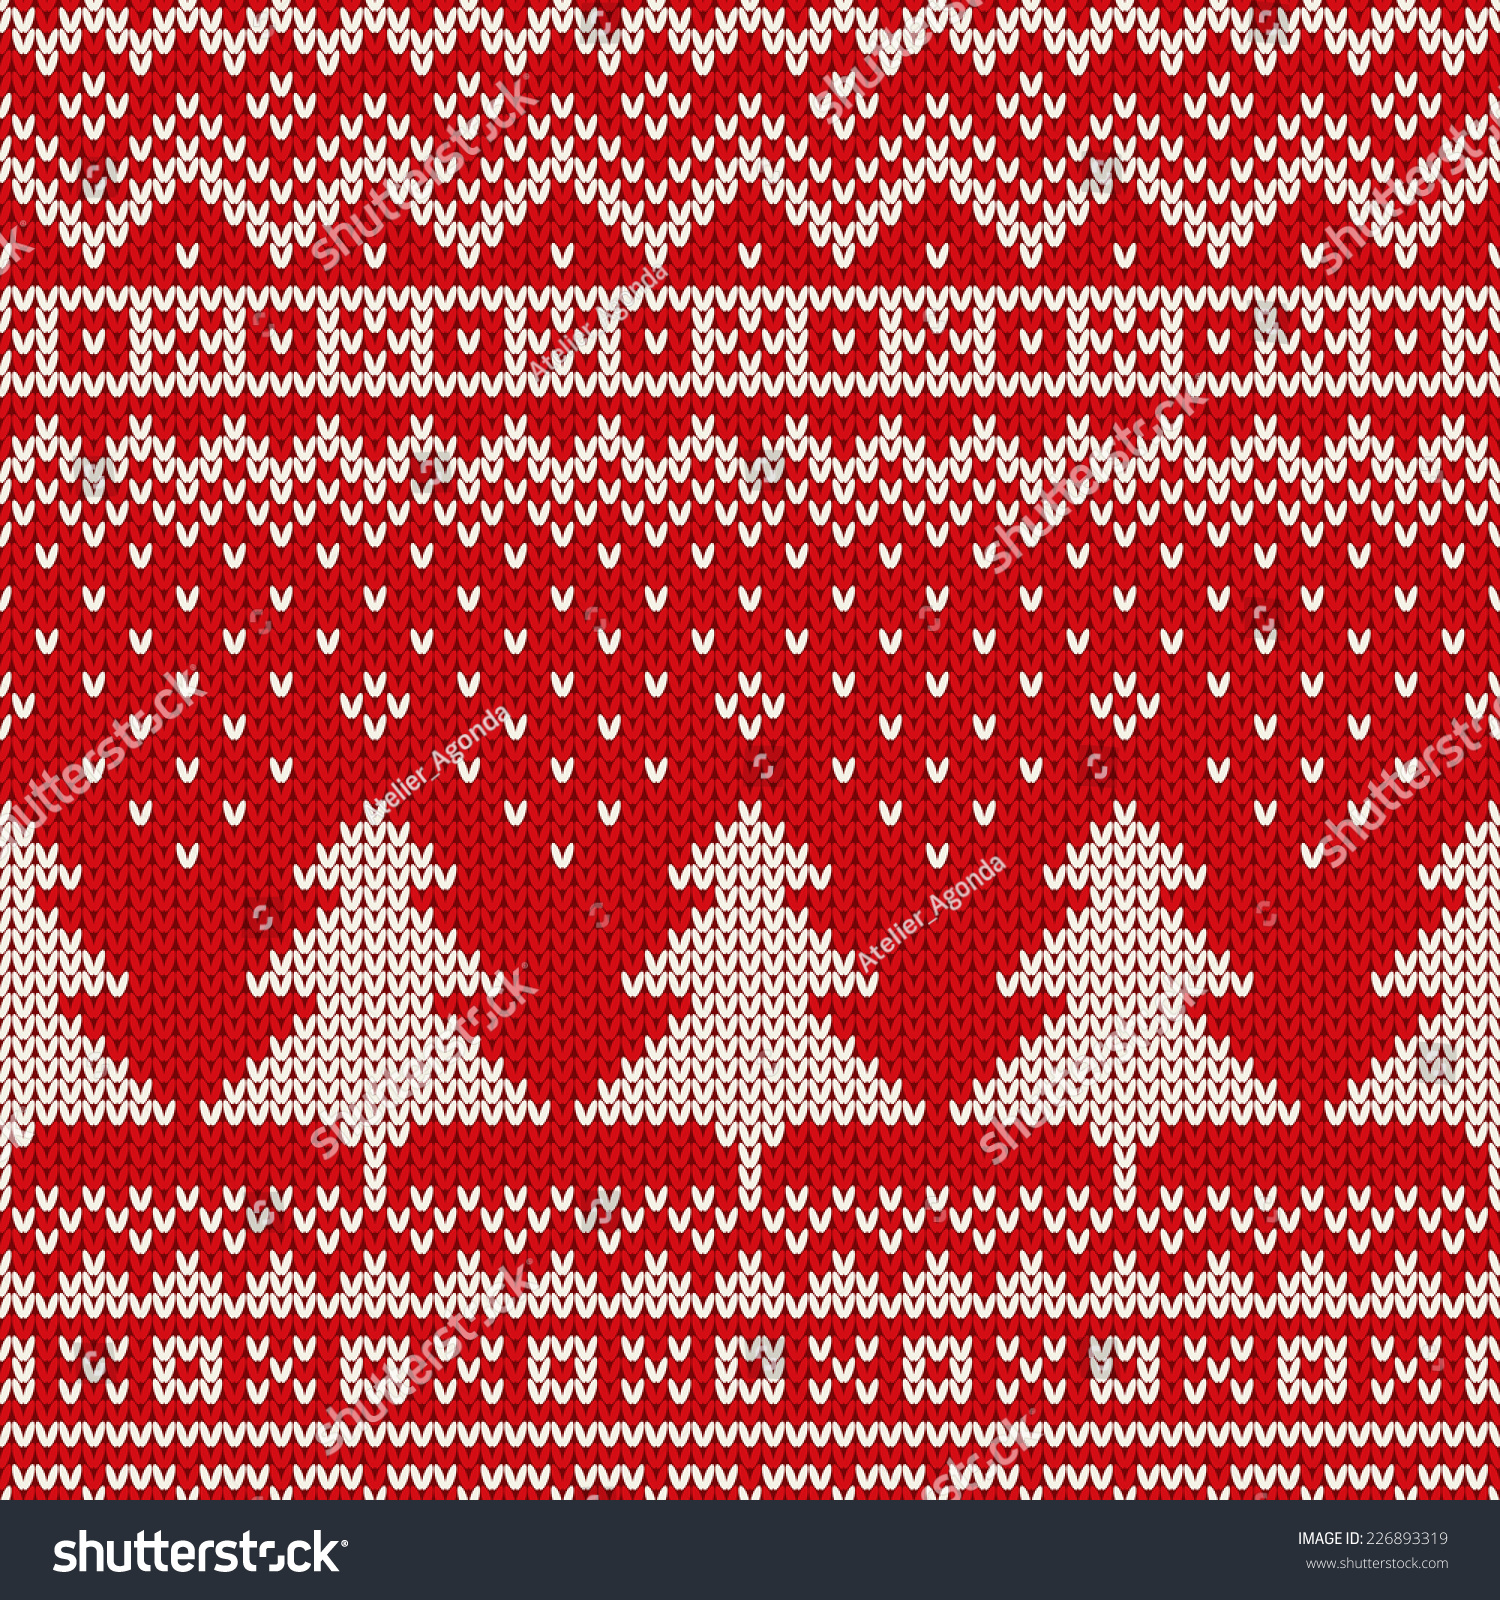 Christmas Knitting Background : Winter holiday pattern on wool knitted stock vector